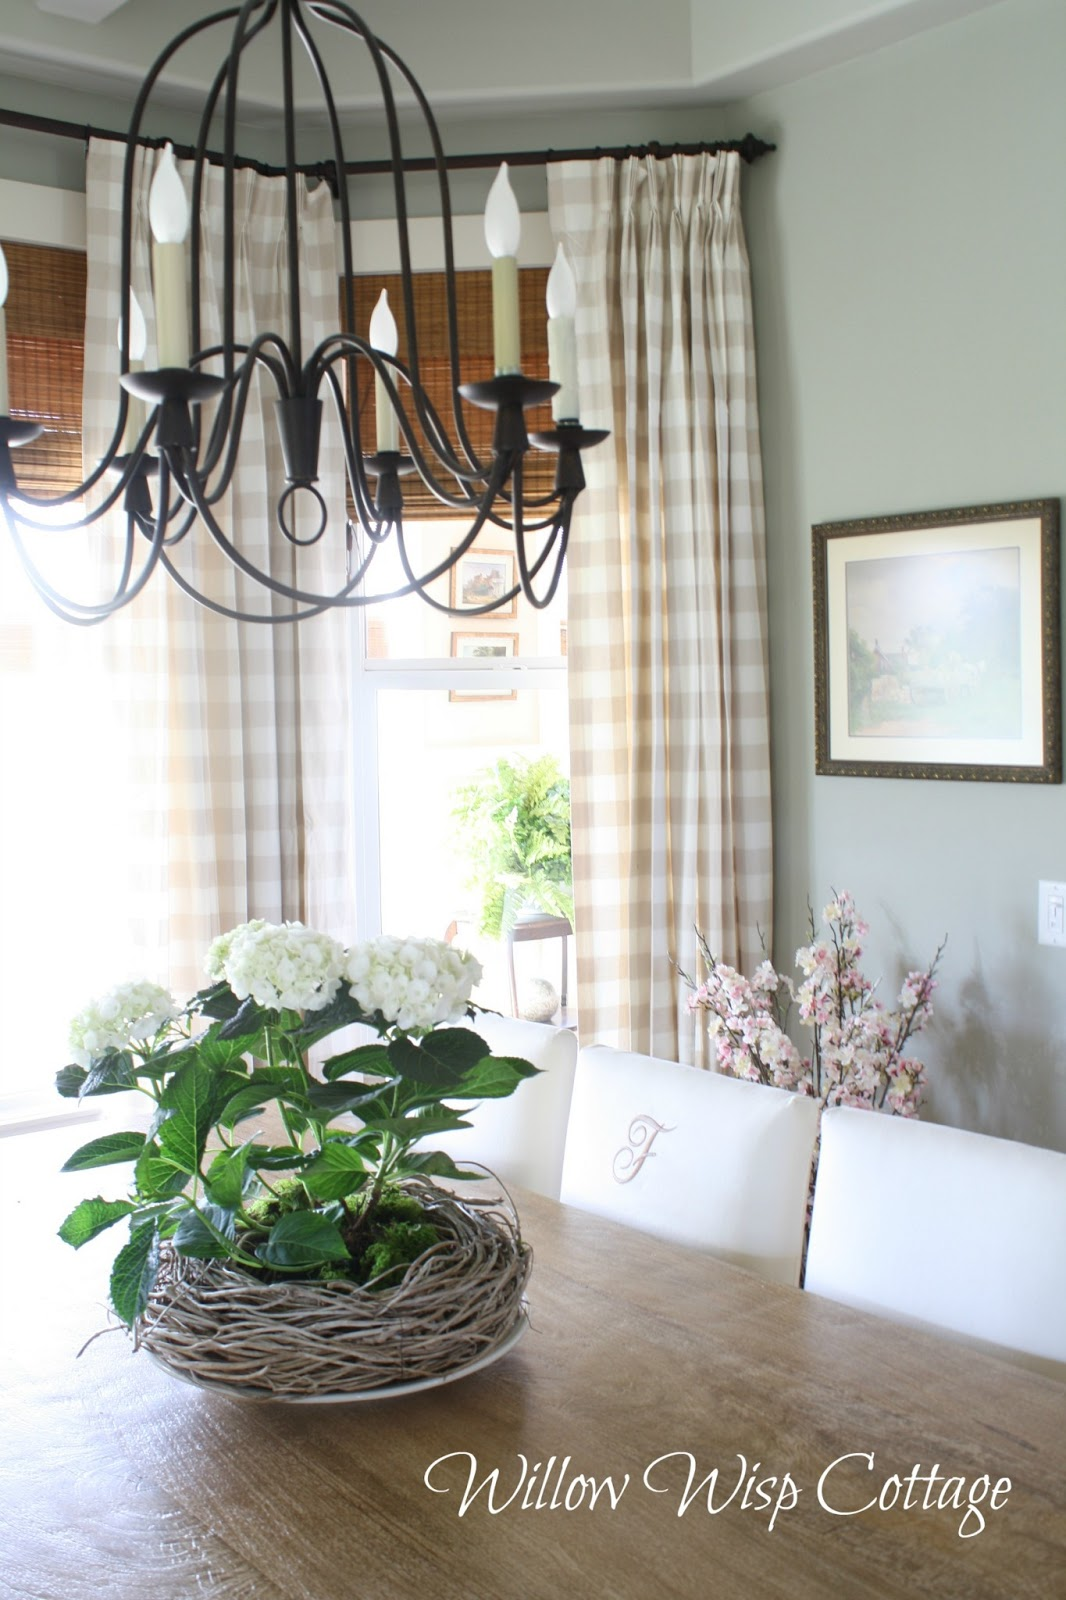 Pottery barn celeste chandelier - Willow Wisp Cottage Details On Our Kitchen Renovation Part 2